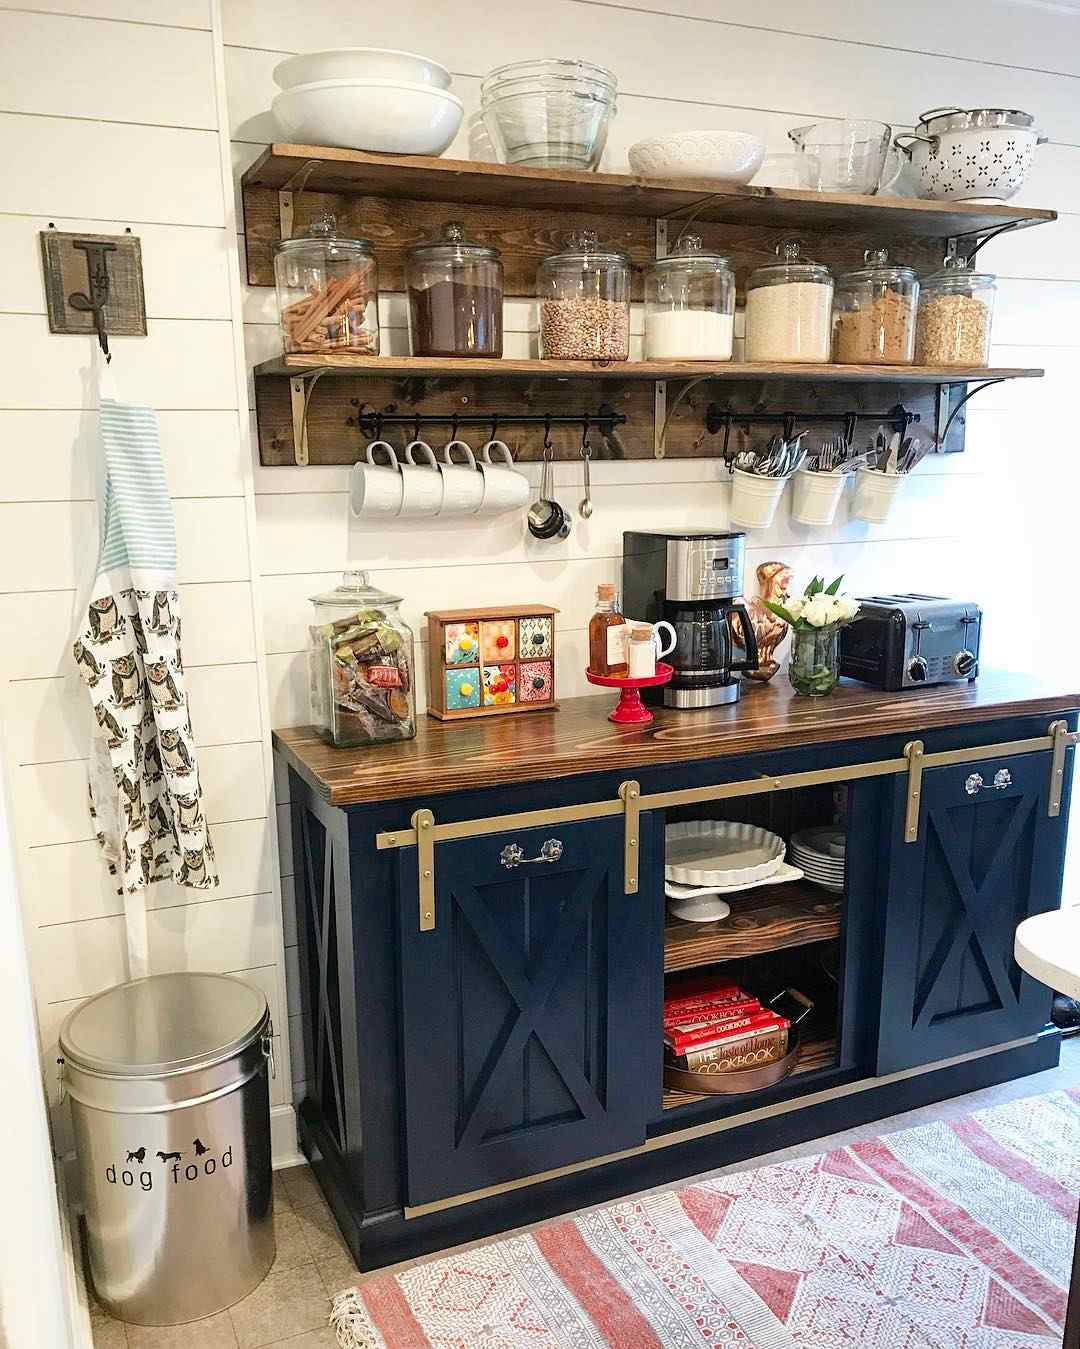 paint at practical shelves of buy cookbooks the them and before instead cabinet shelf amazing white interesting building you end ikea for your ideas diy spice shelving install three kitchen